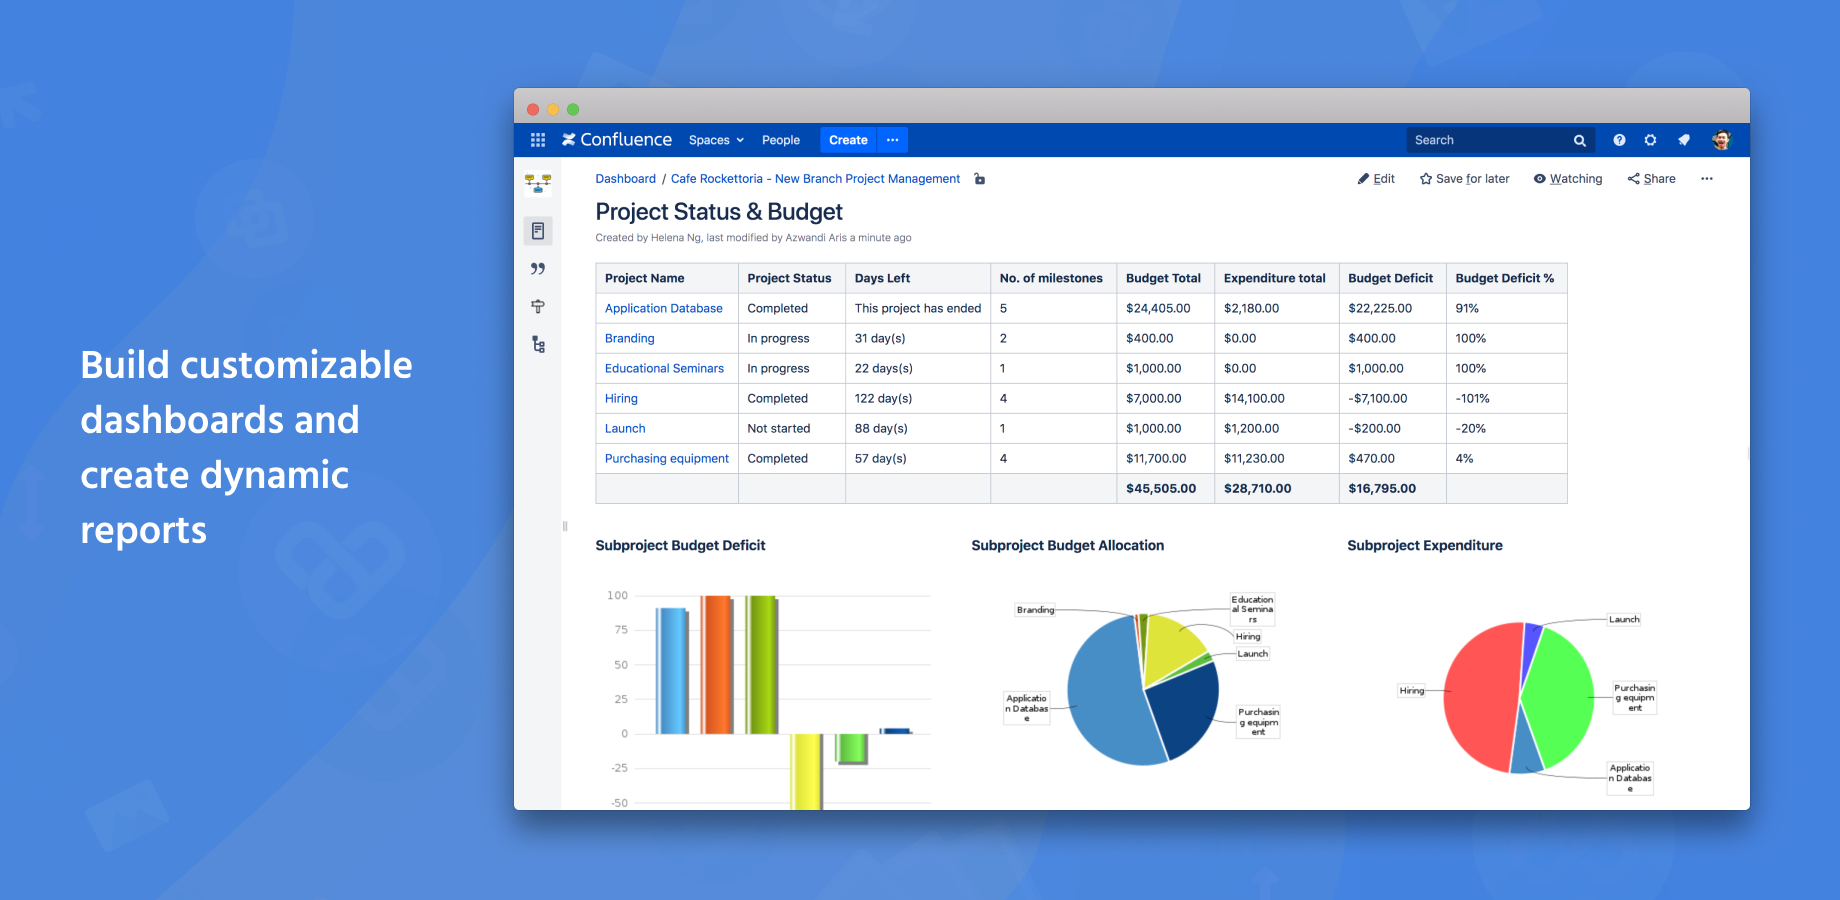 Build Customizable Dashboards and Reports